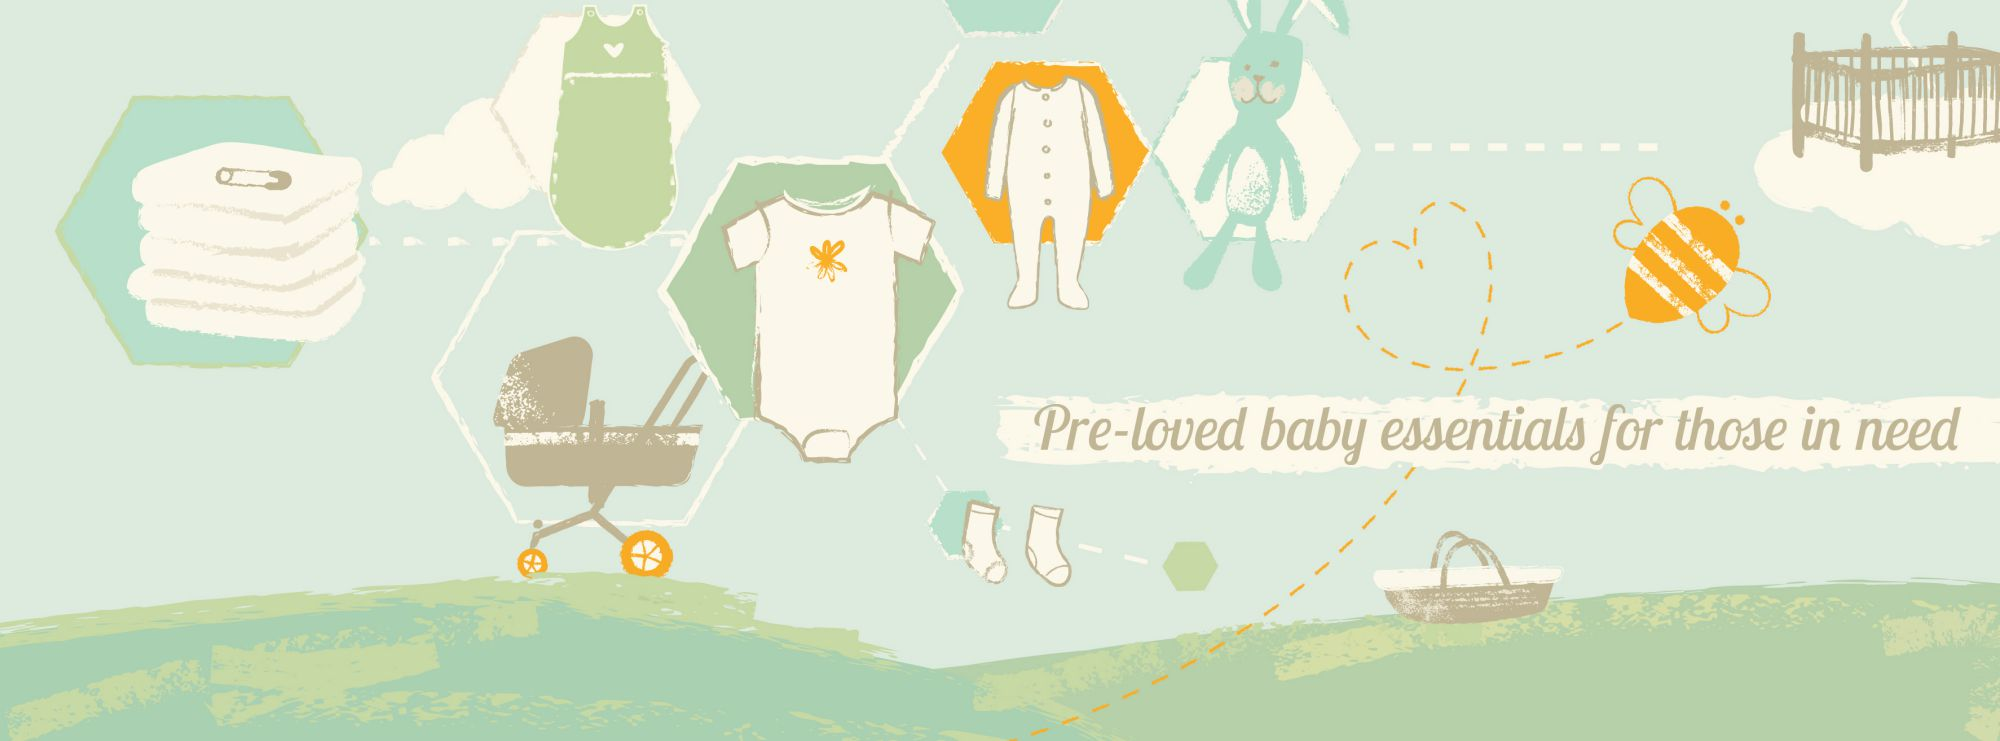 BabyBank banner with text